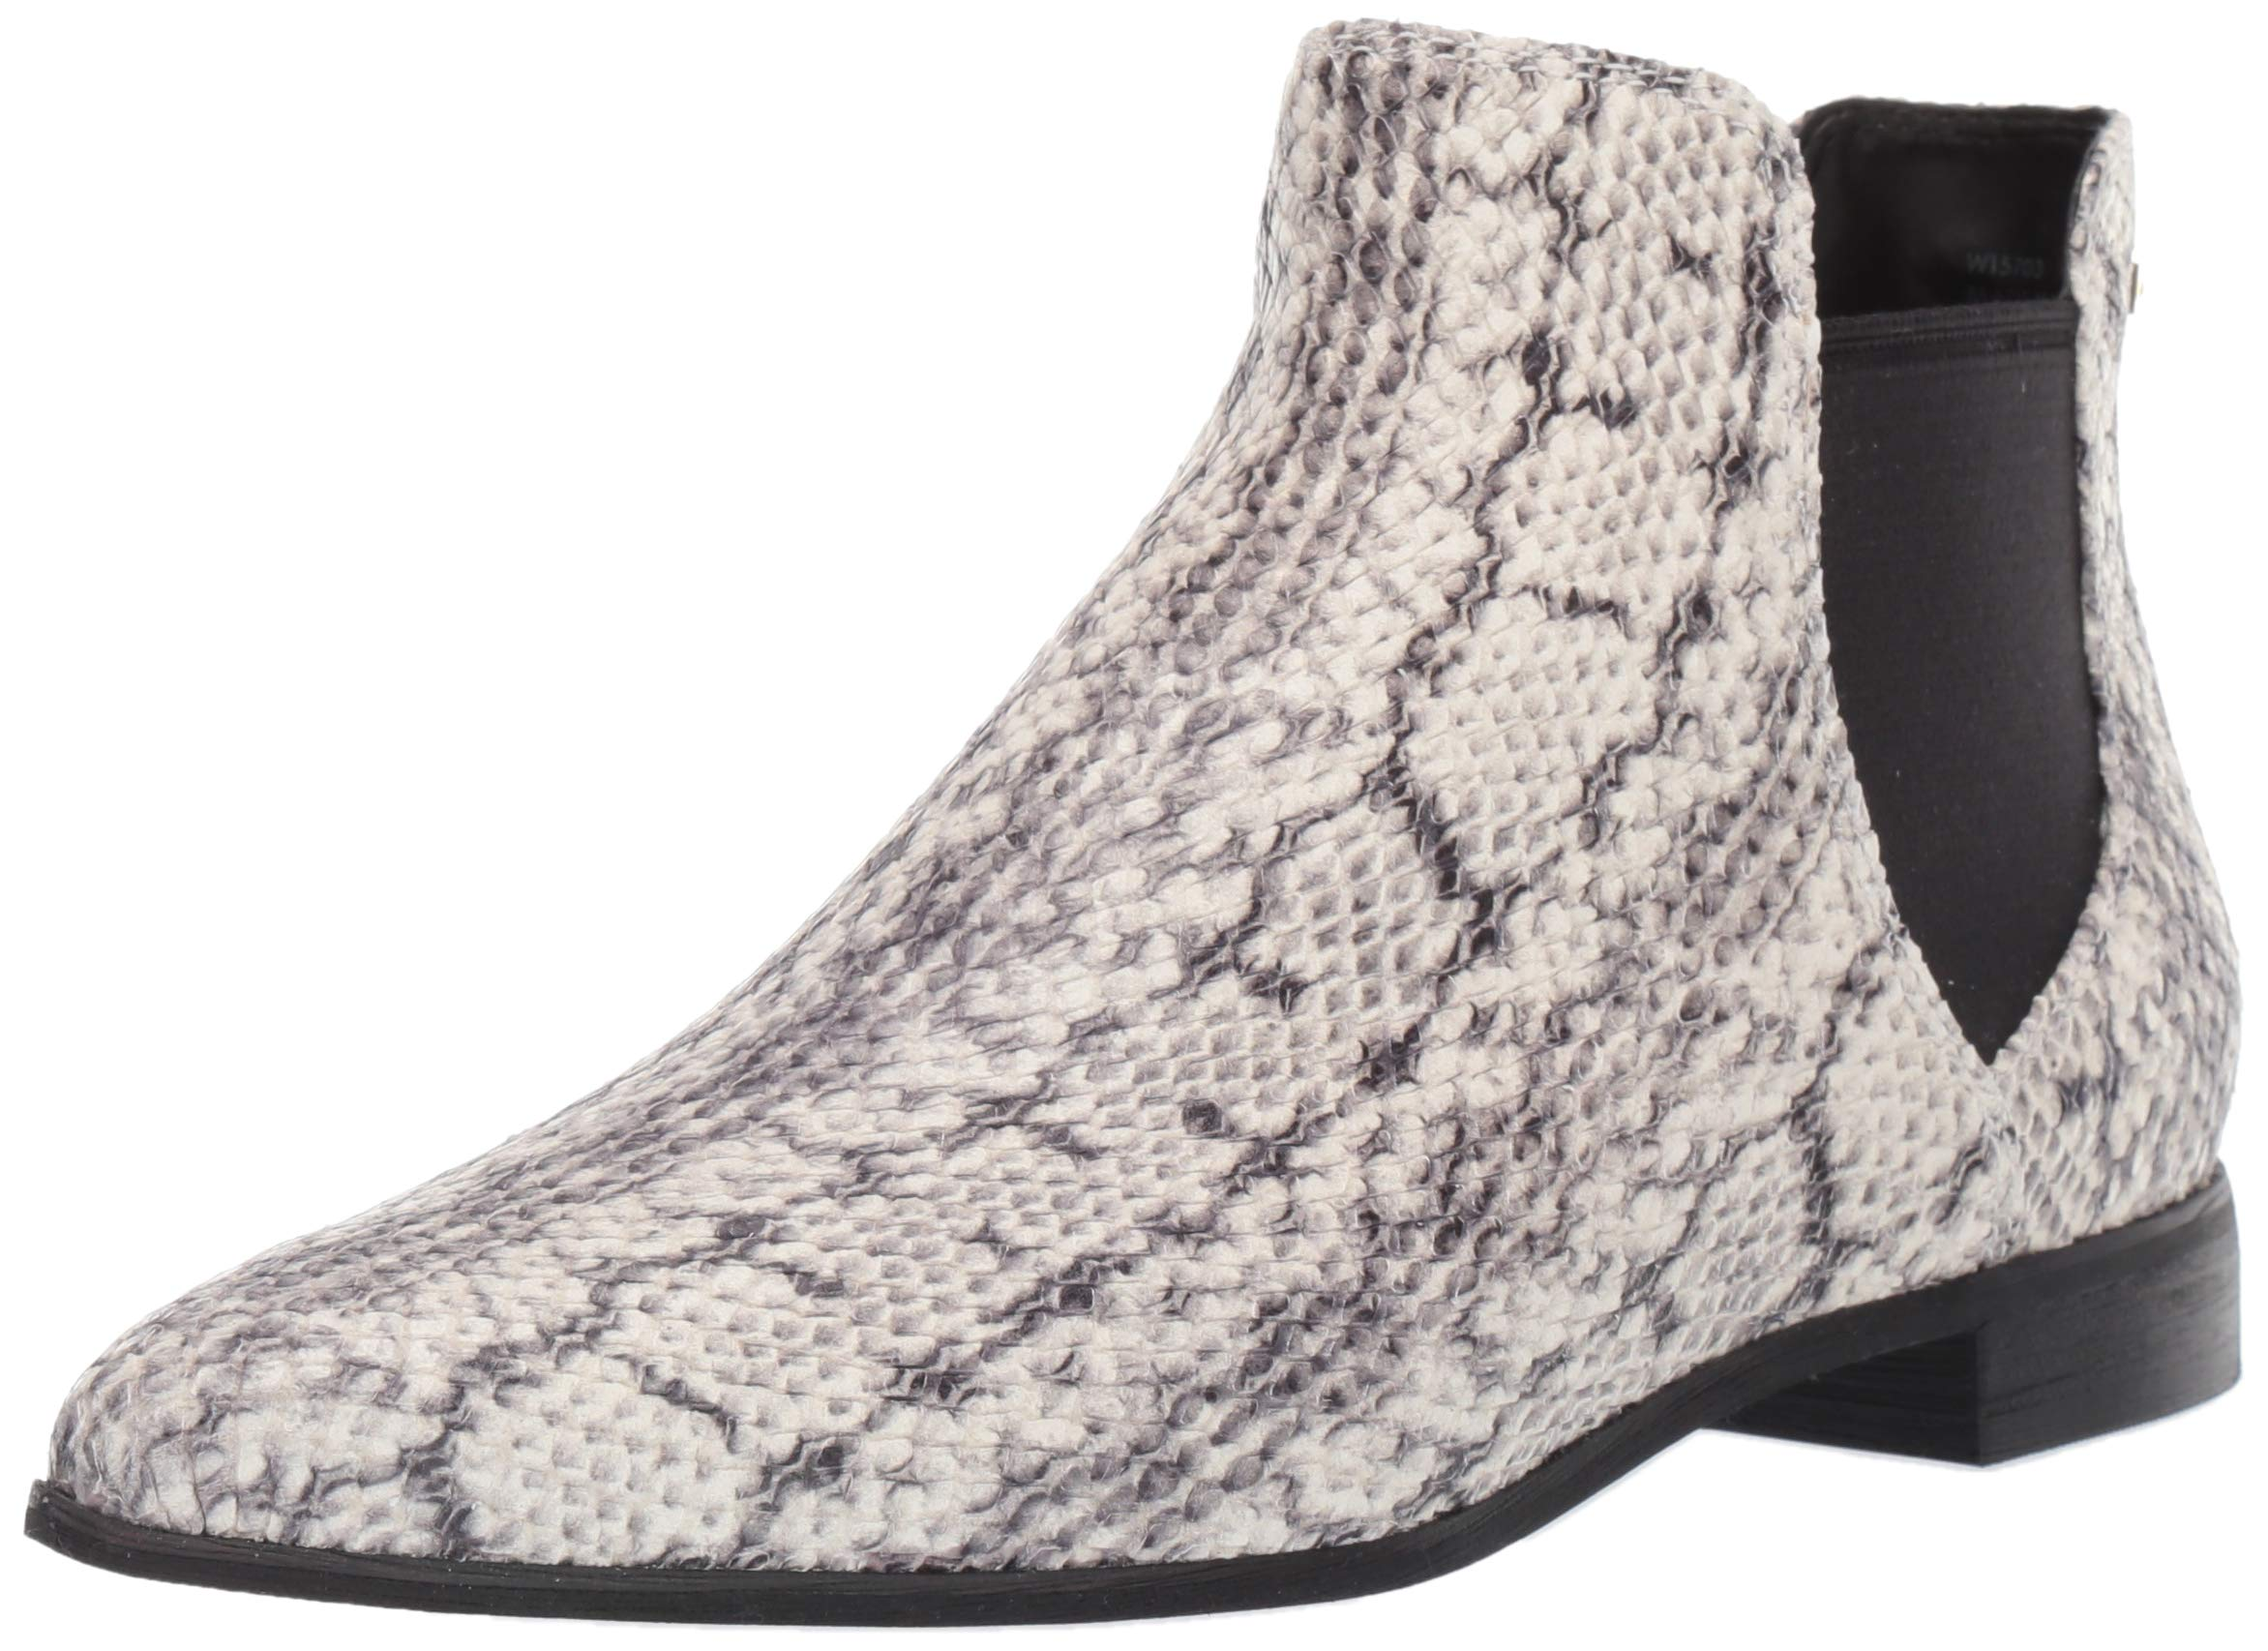 Cole Haan Women's Harlyn Bootie Ankle Boot, NTRL Python Lthr, 10.5 B US by Cole Haan